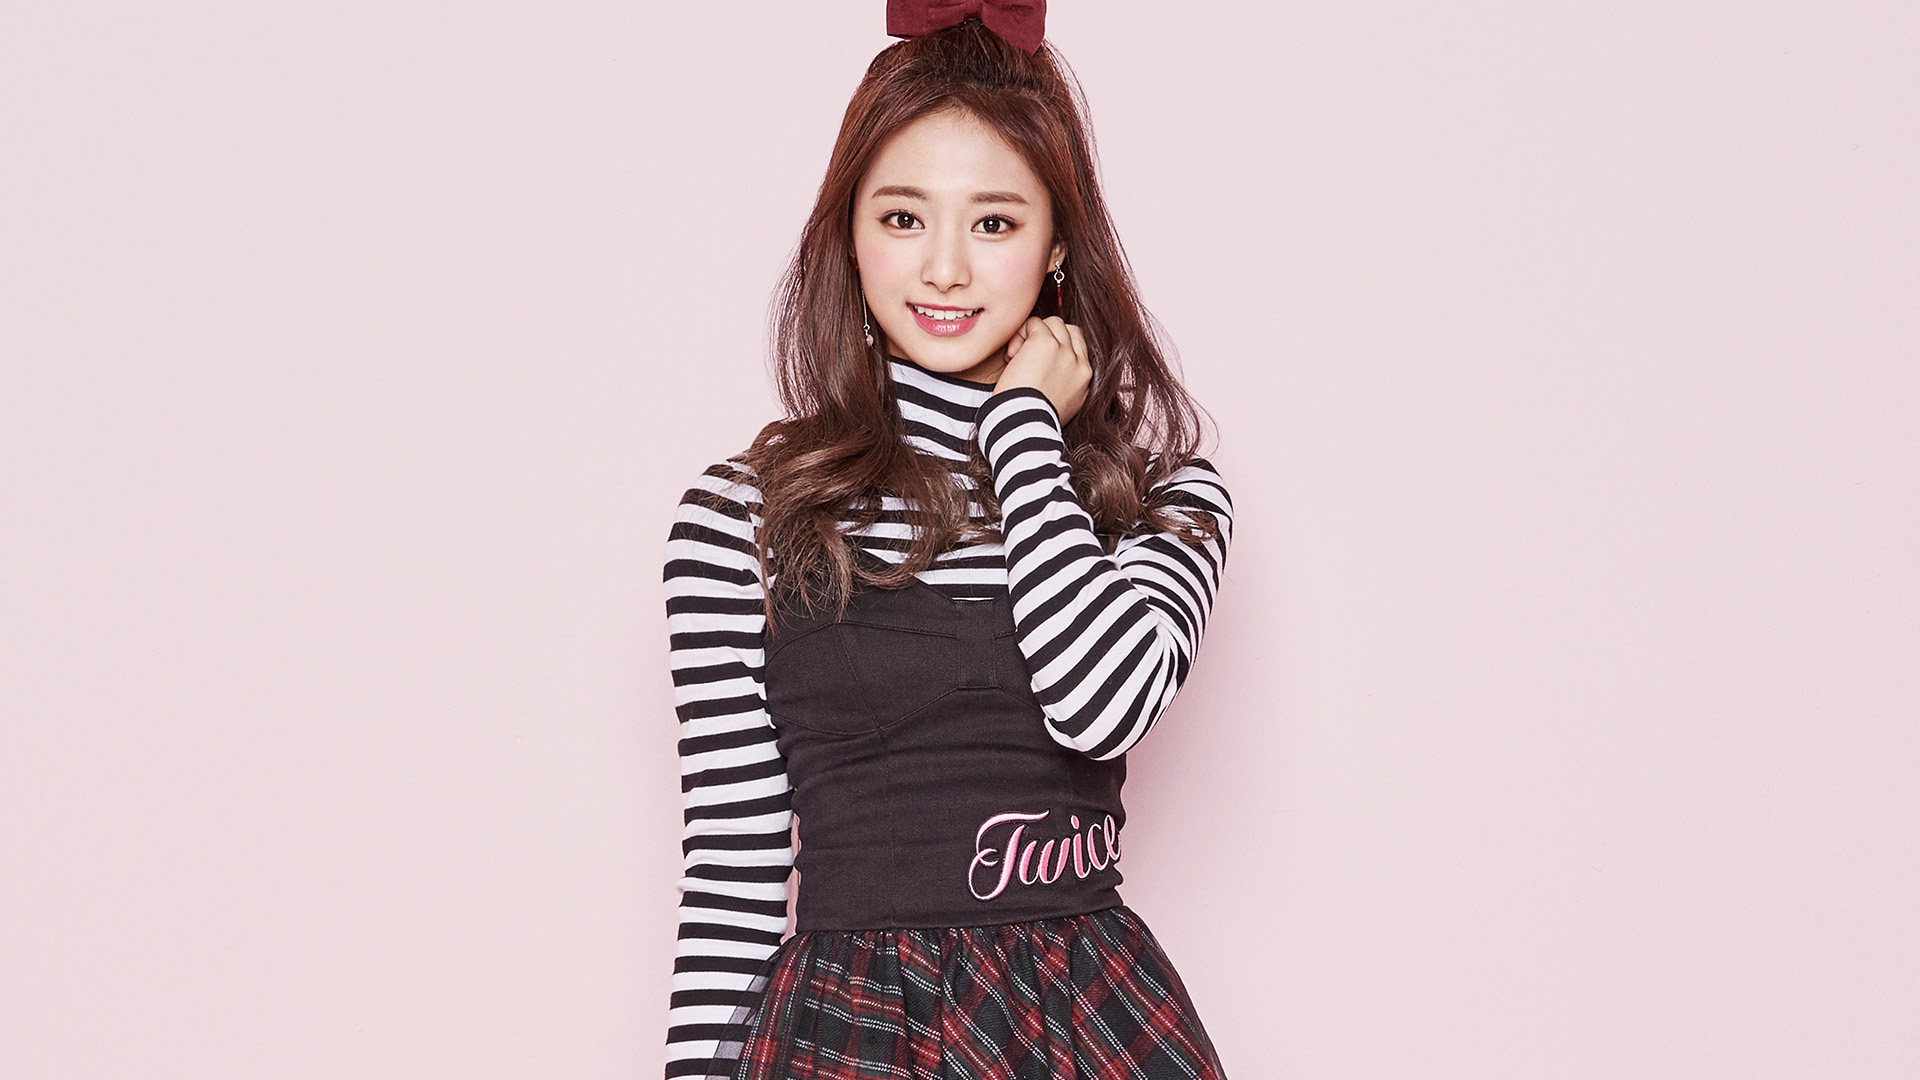 Pink Cute Wallpaper For Iphone Hm34 Twice Kpop Tzuyu Pink Cute Wallpaper